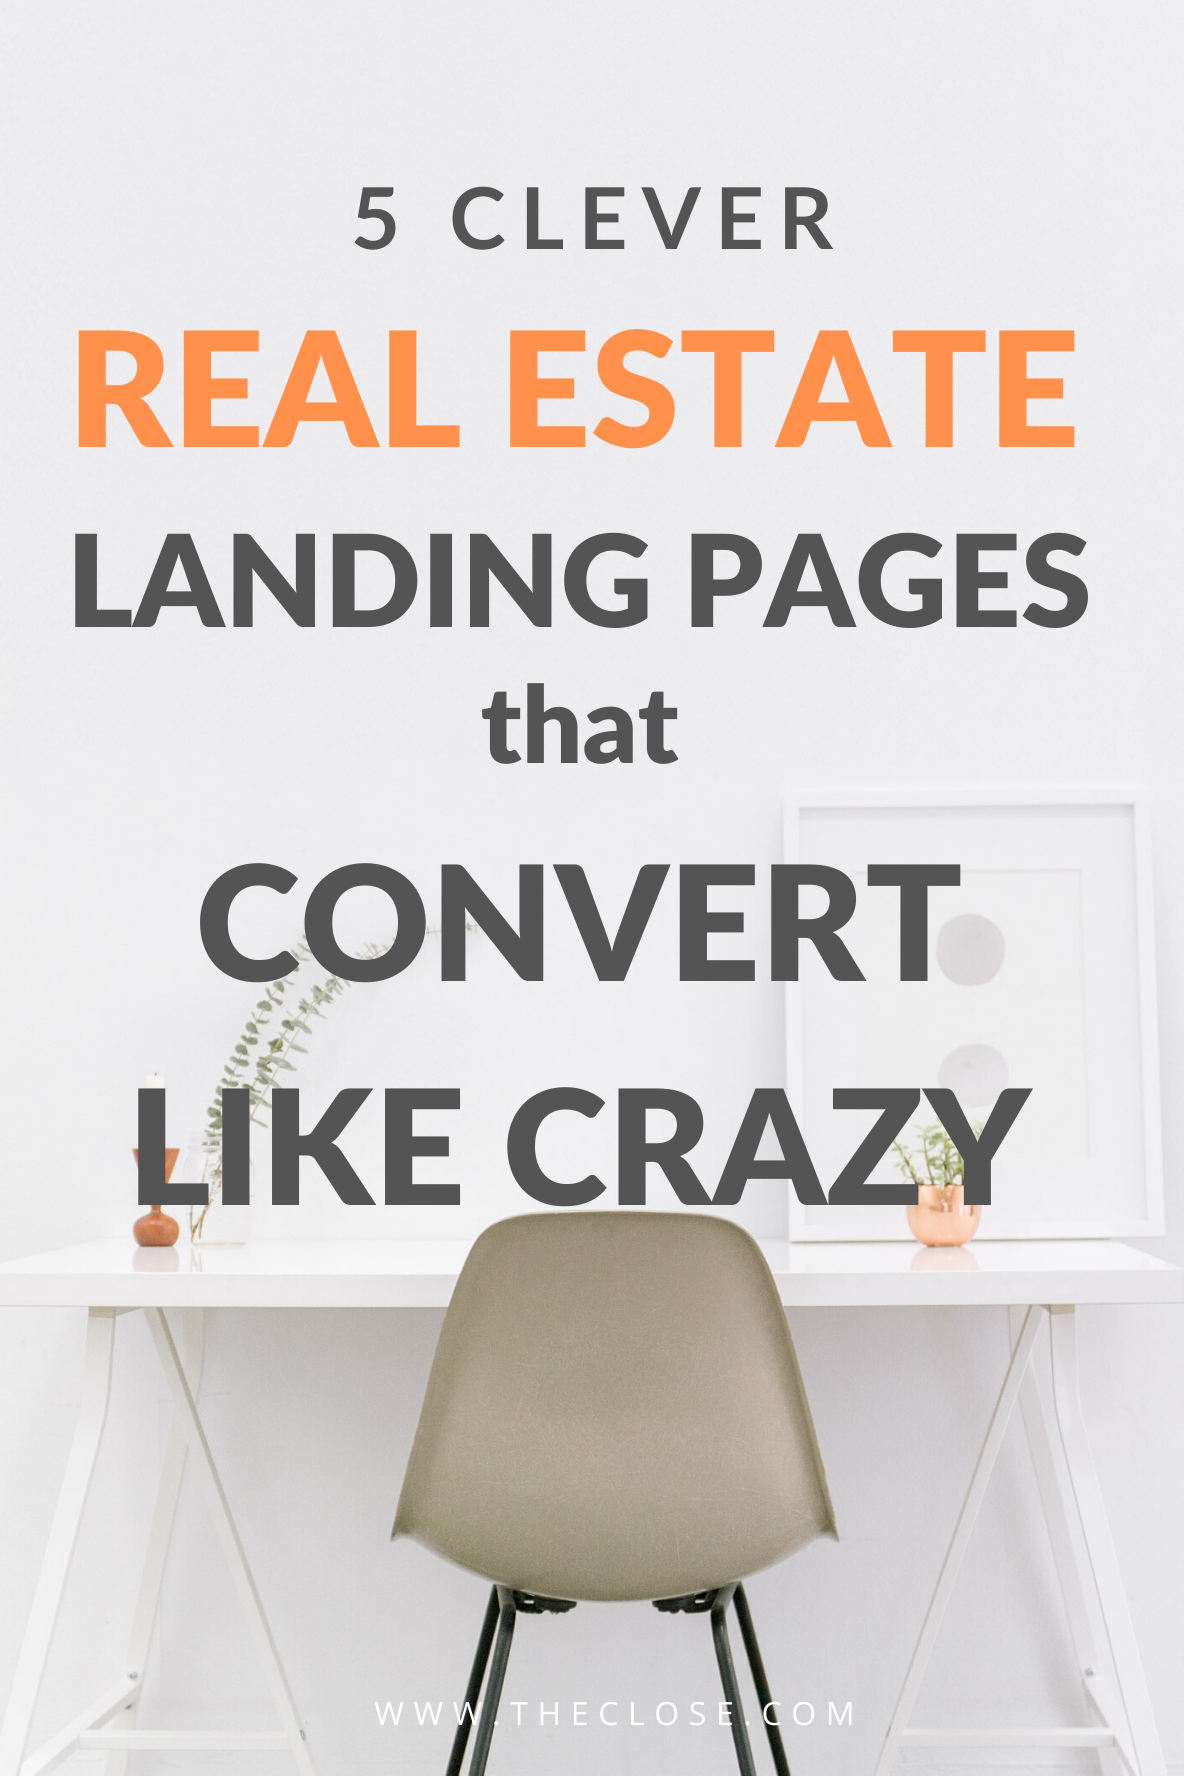 5 Clever Real Estate Landing Pages That Convert Like Crazy